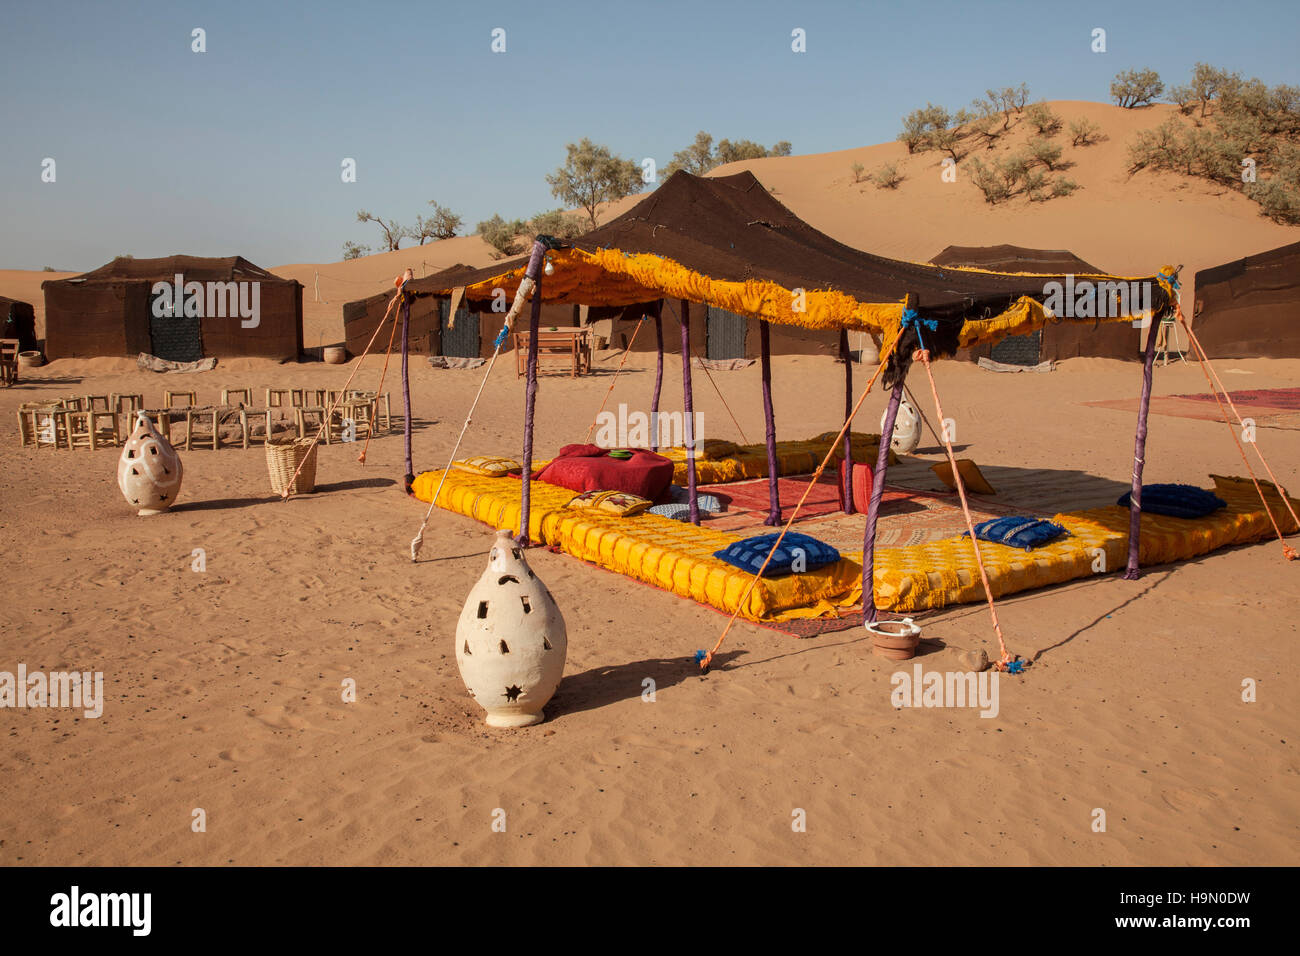 Campsite in the Sahara Desert - Stock Image